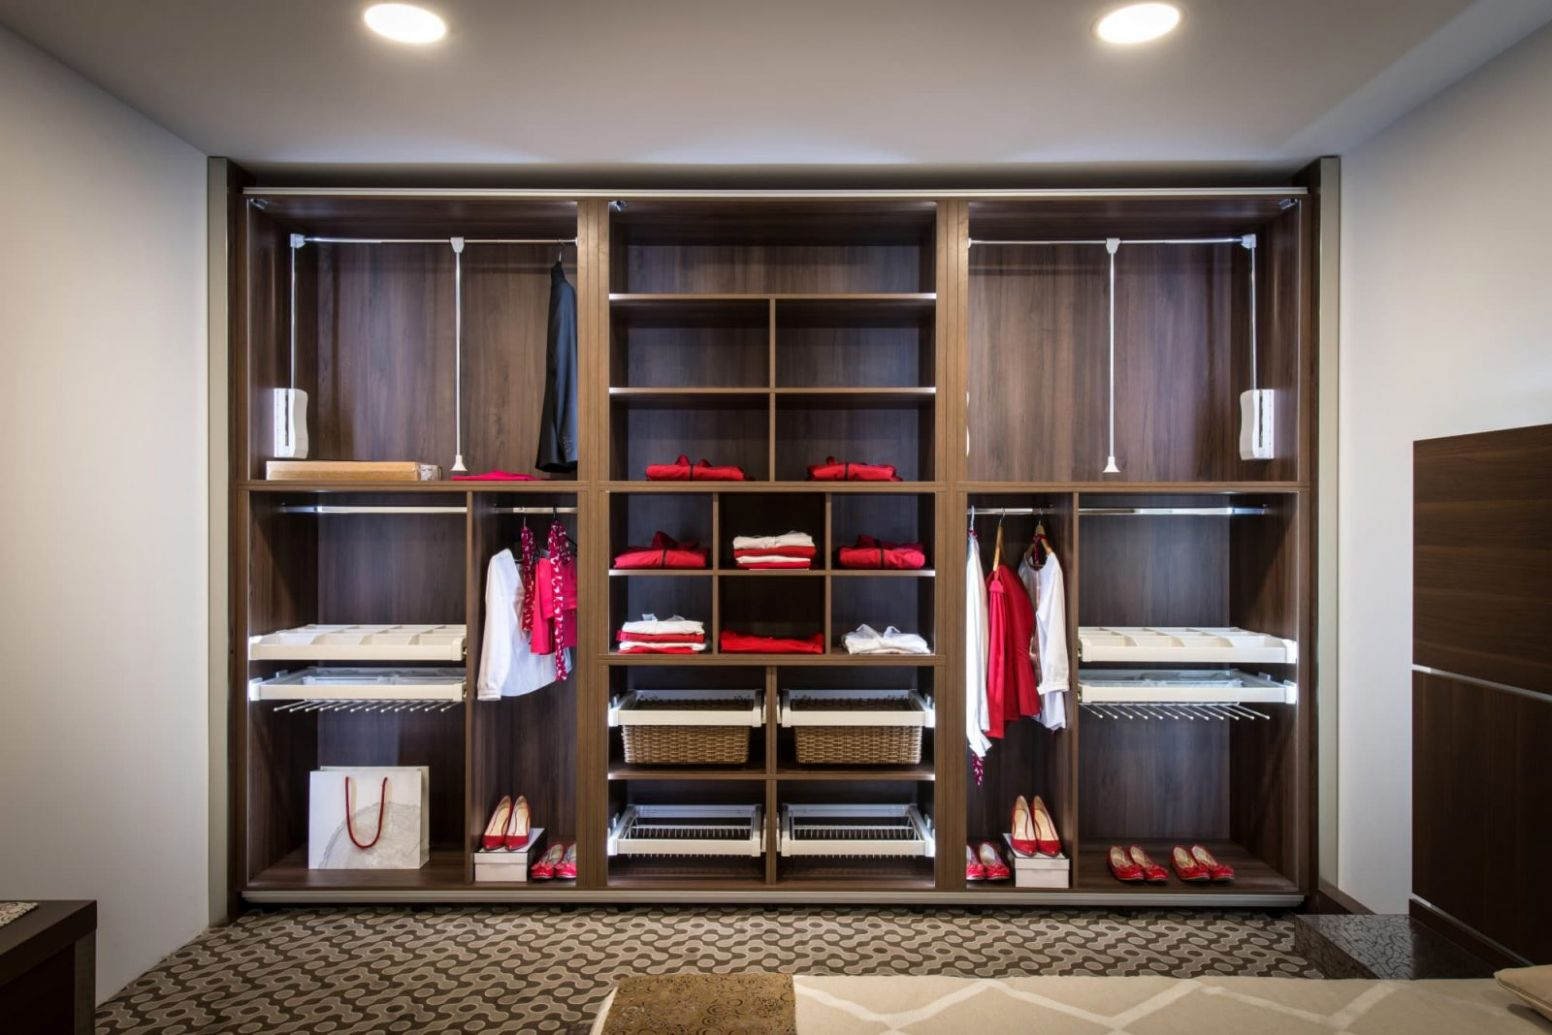 Your Closet Design Says a Lot about You: These Custom Closet Ideas ...